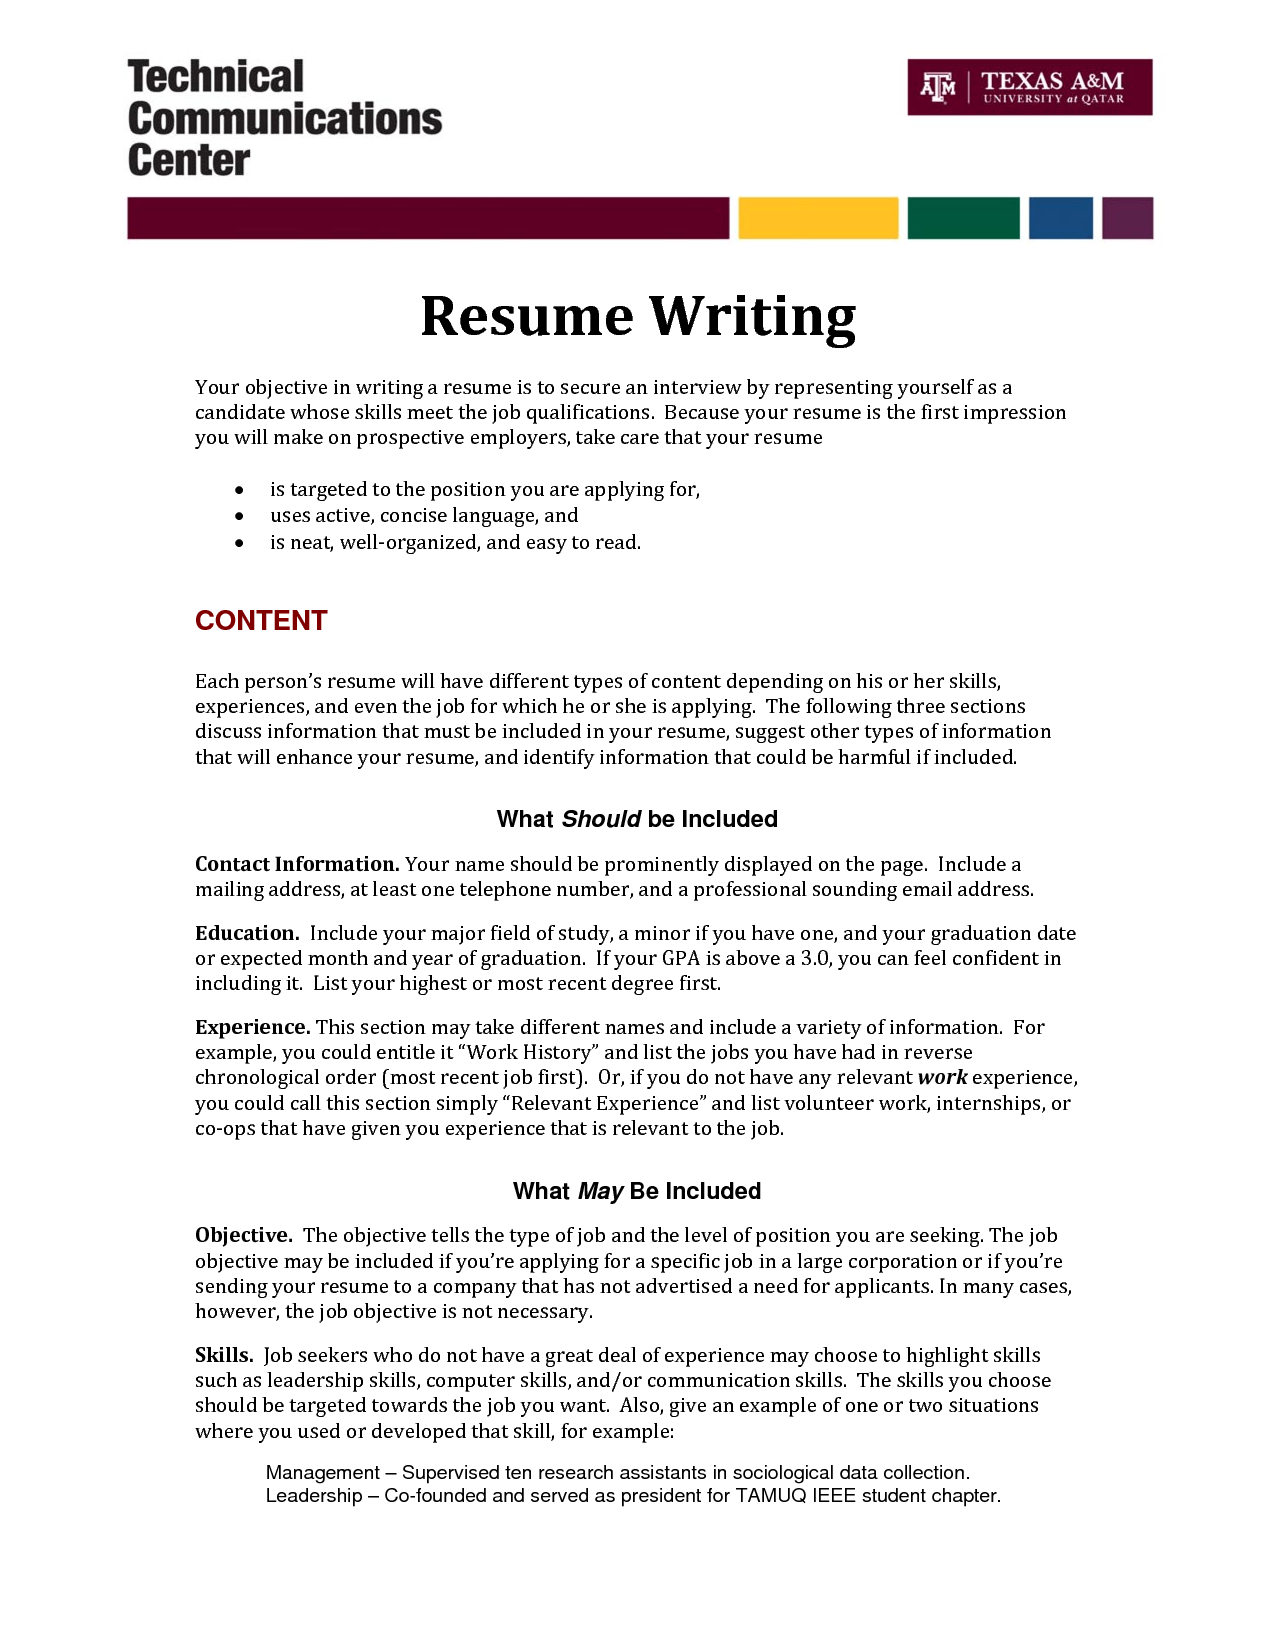 resume how to write objective make resume - What To Write In The Objective Of A Resume